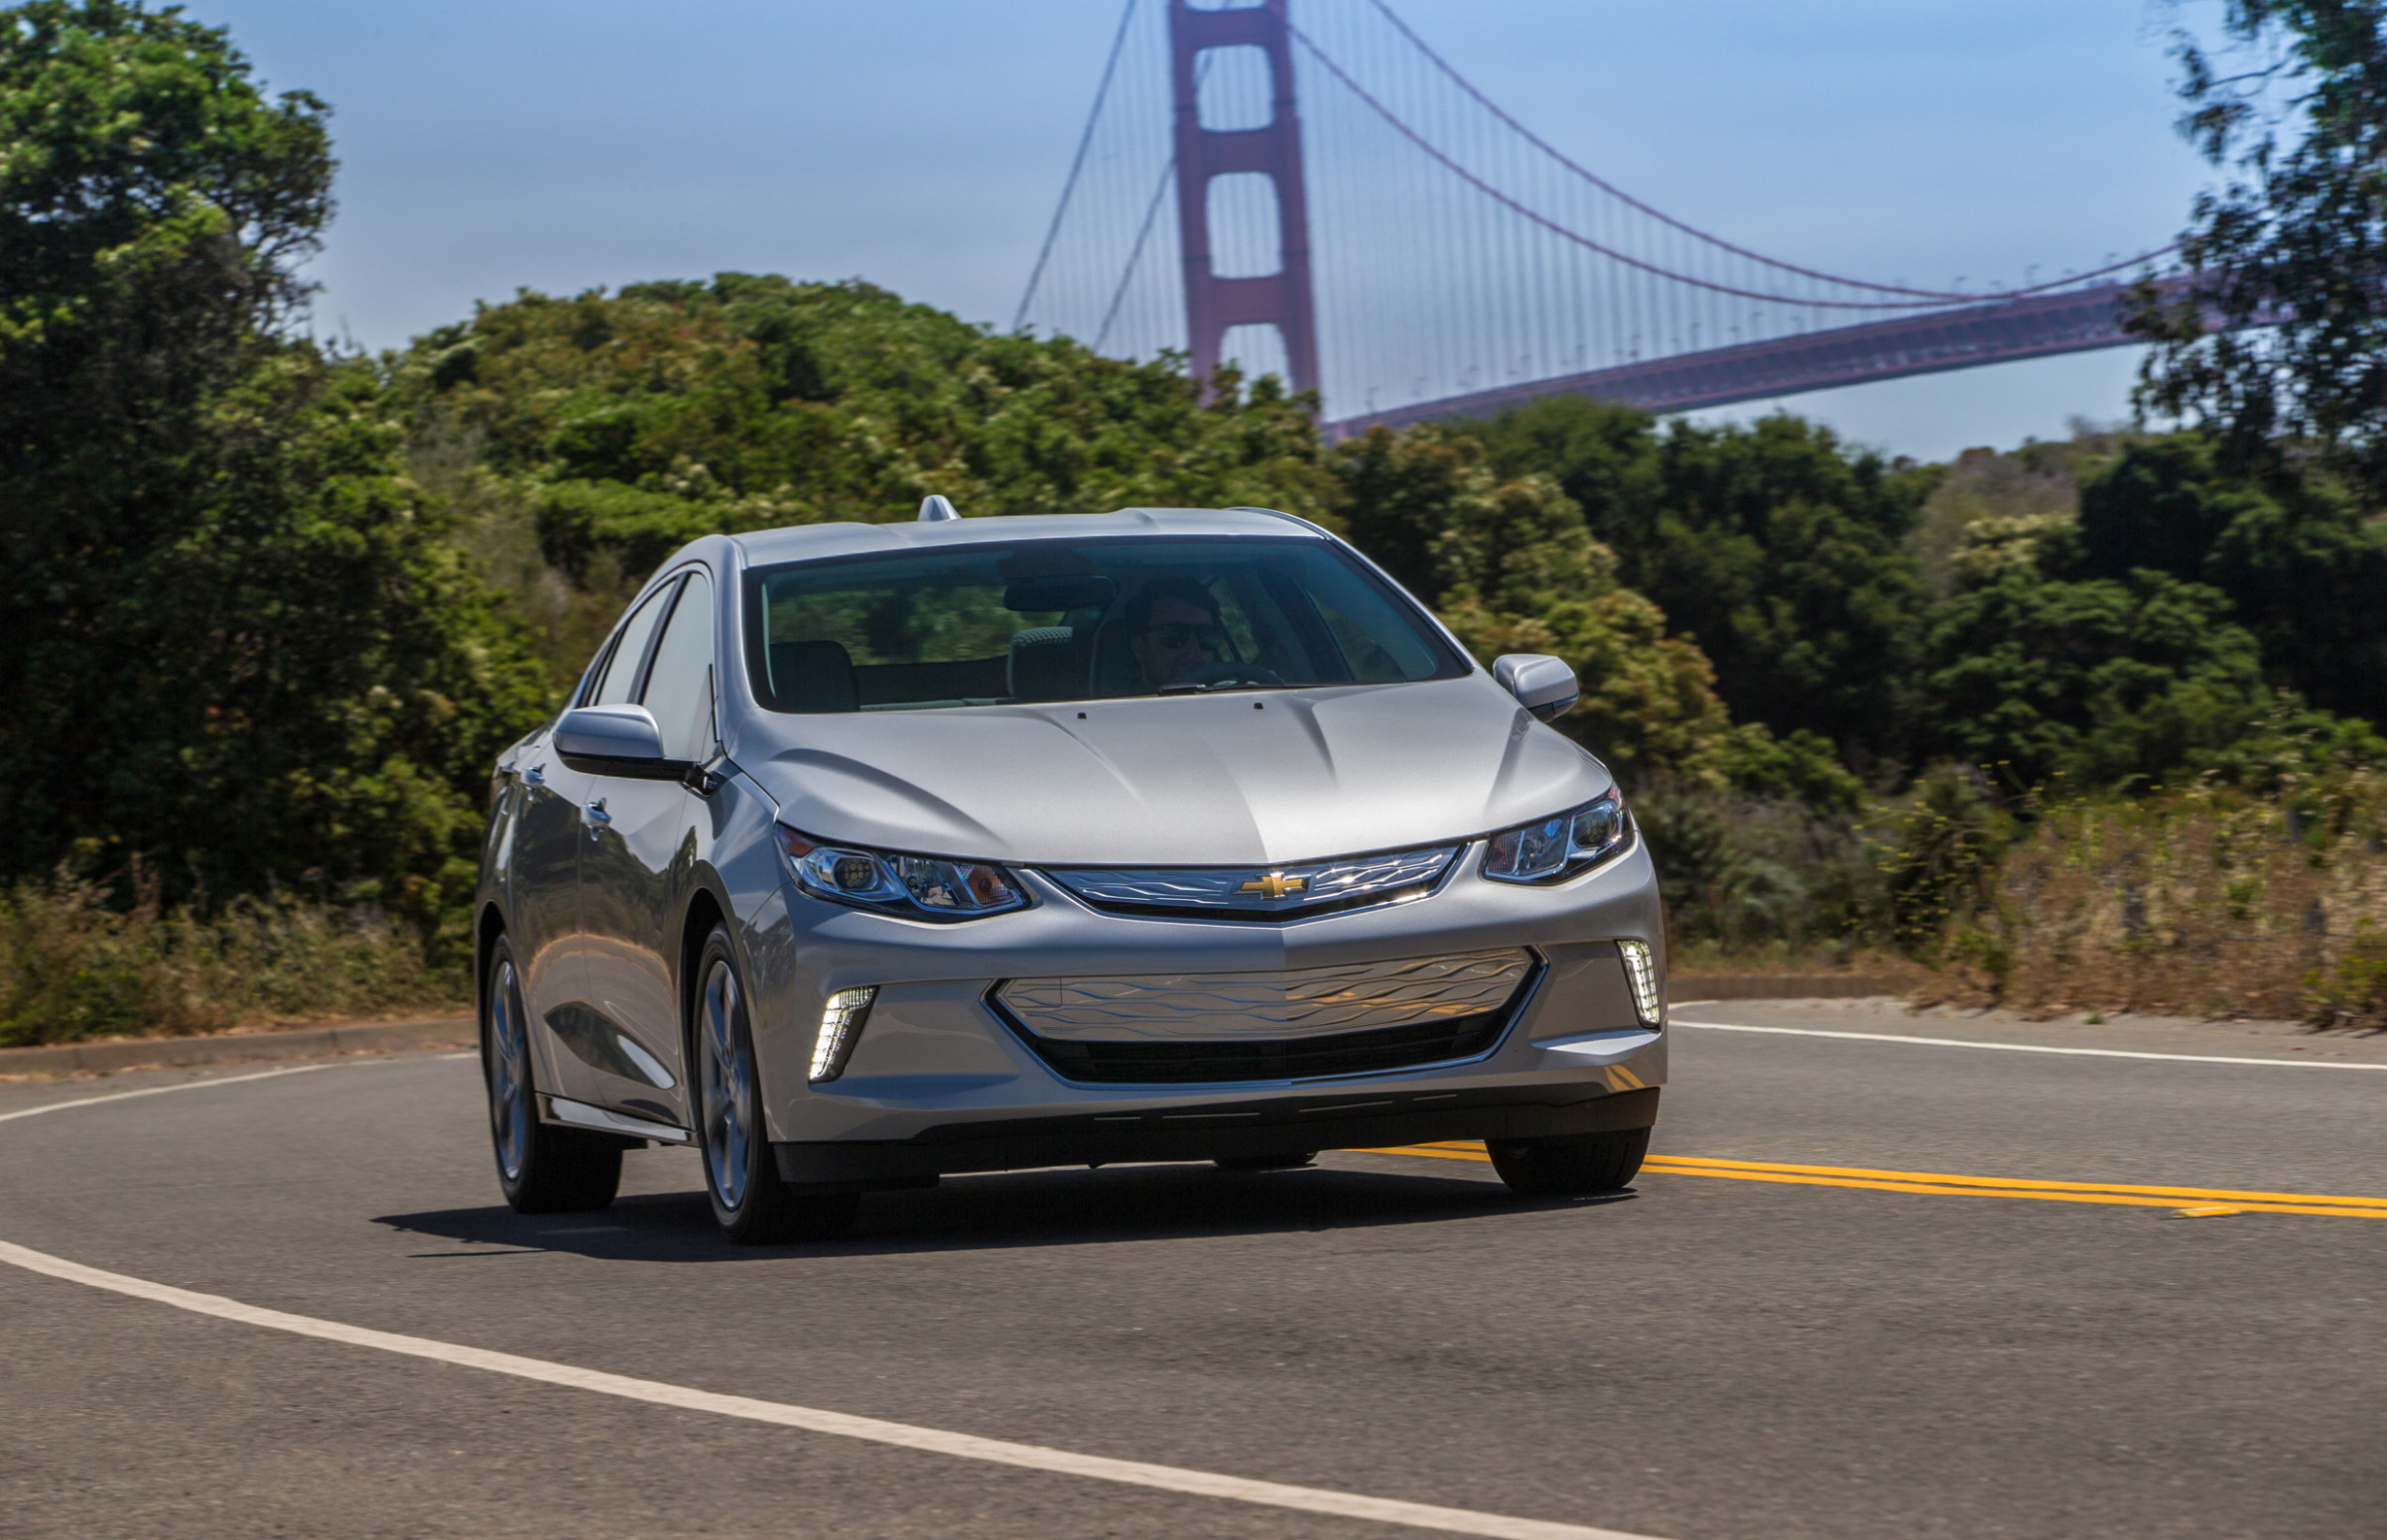 Chevrolet Volt 9 - View Specs, Prices, Photos & More | Driving - 2020 chevrolet volt premier for sale